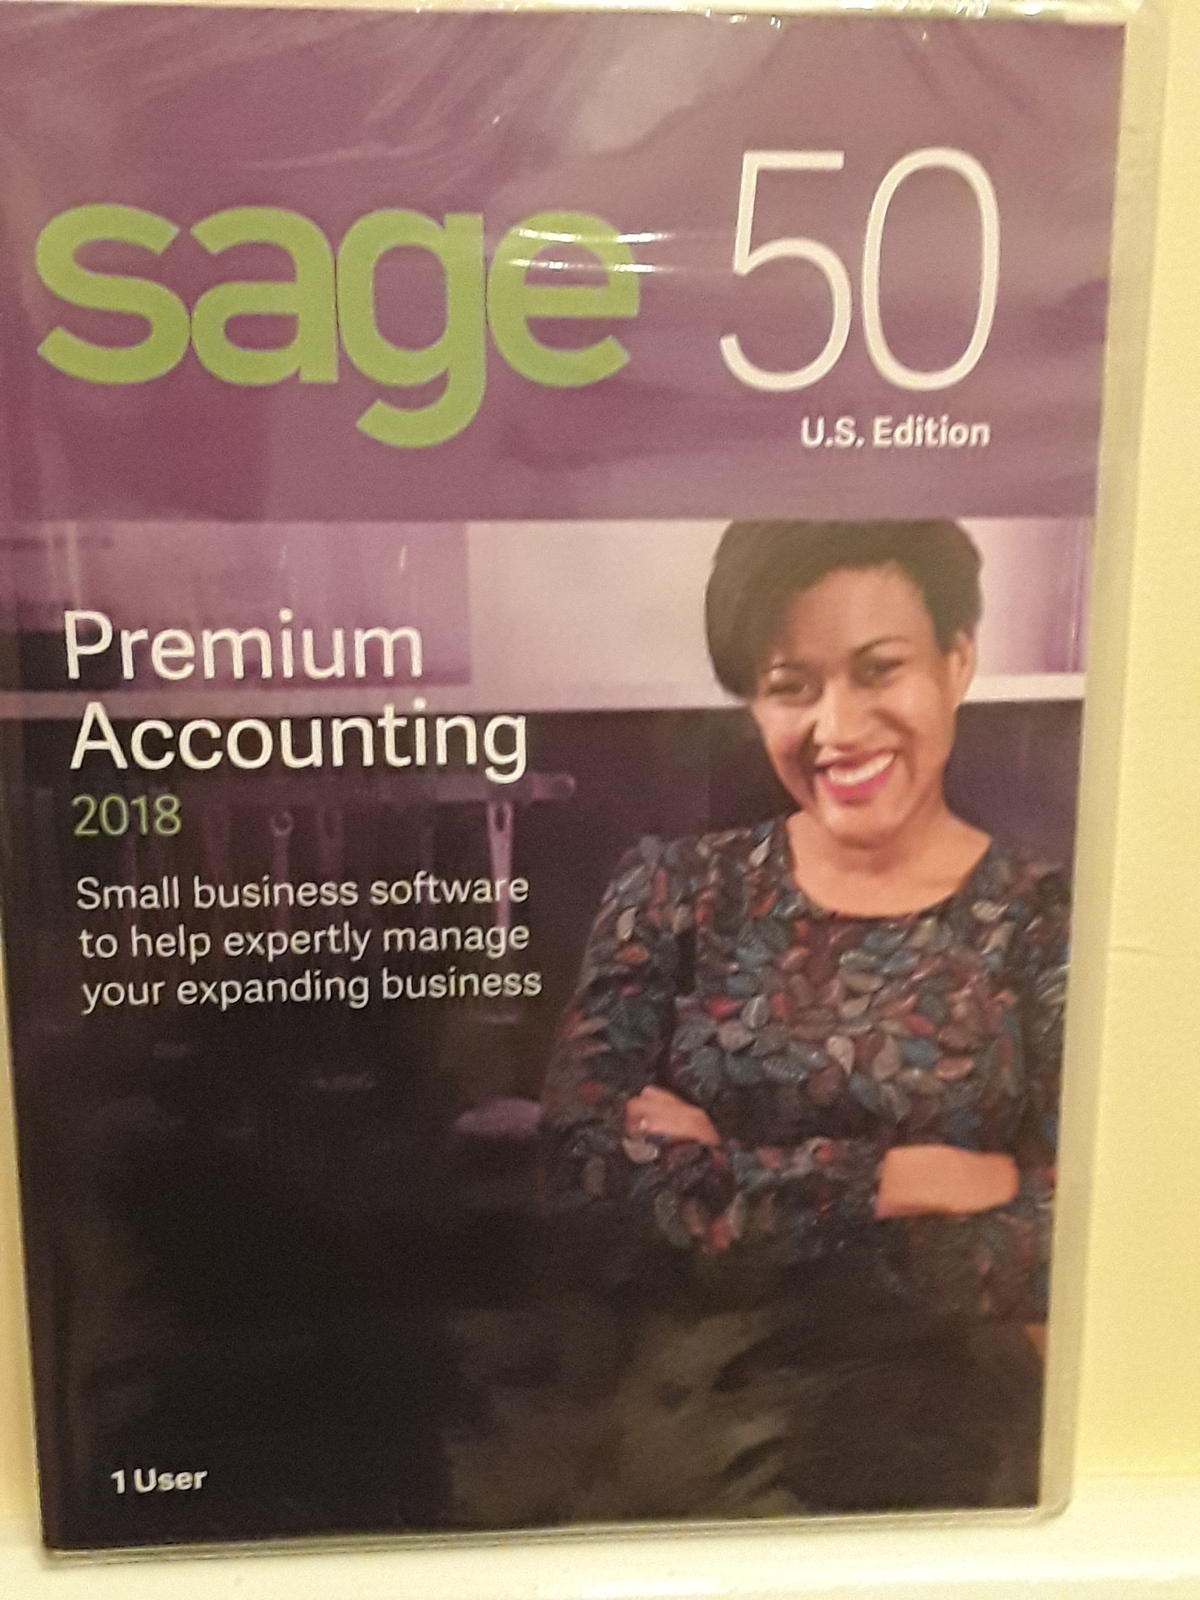 Sage 50 Premium Accounting Software